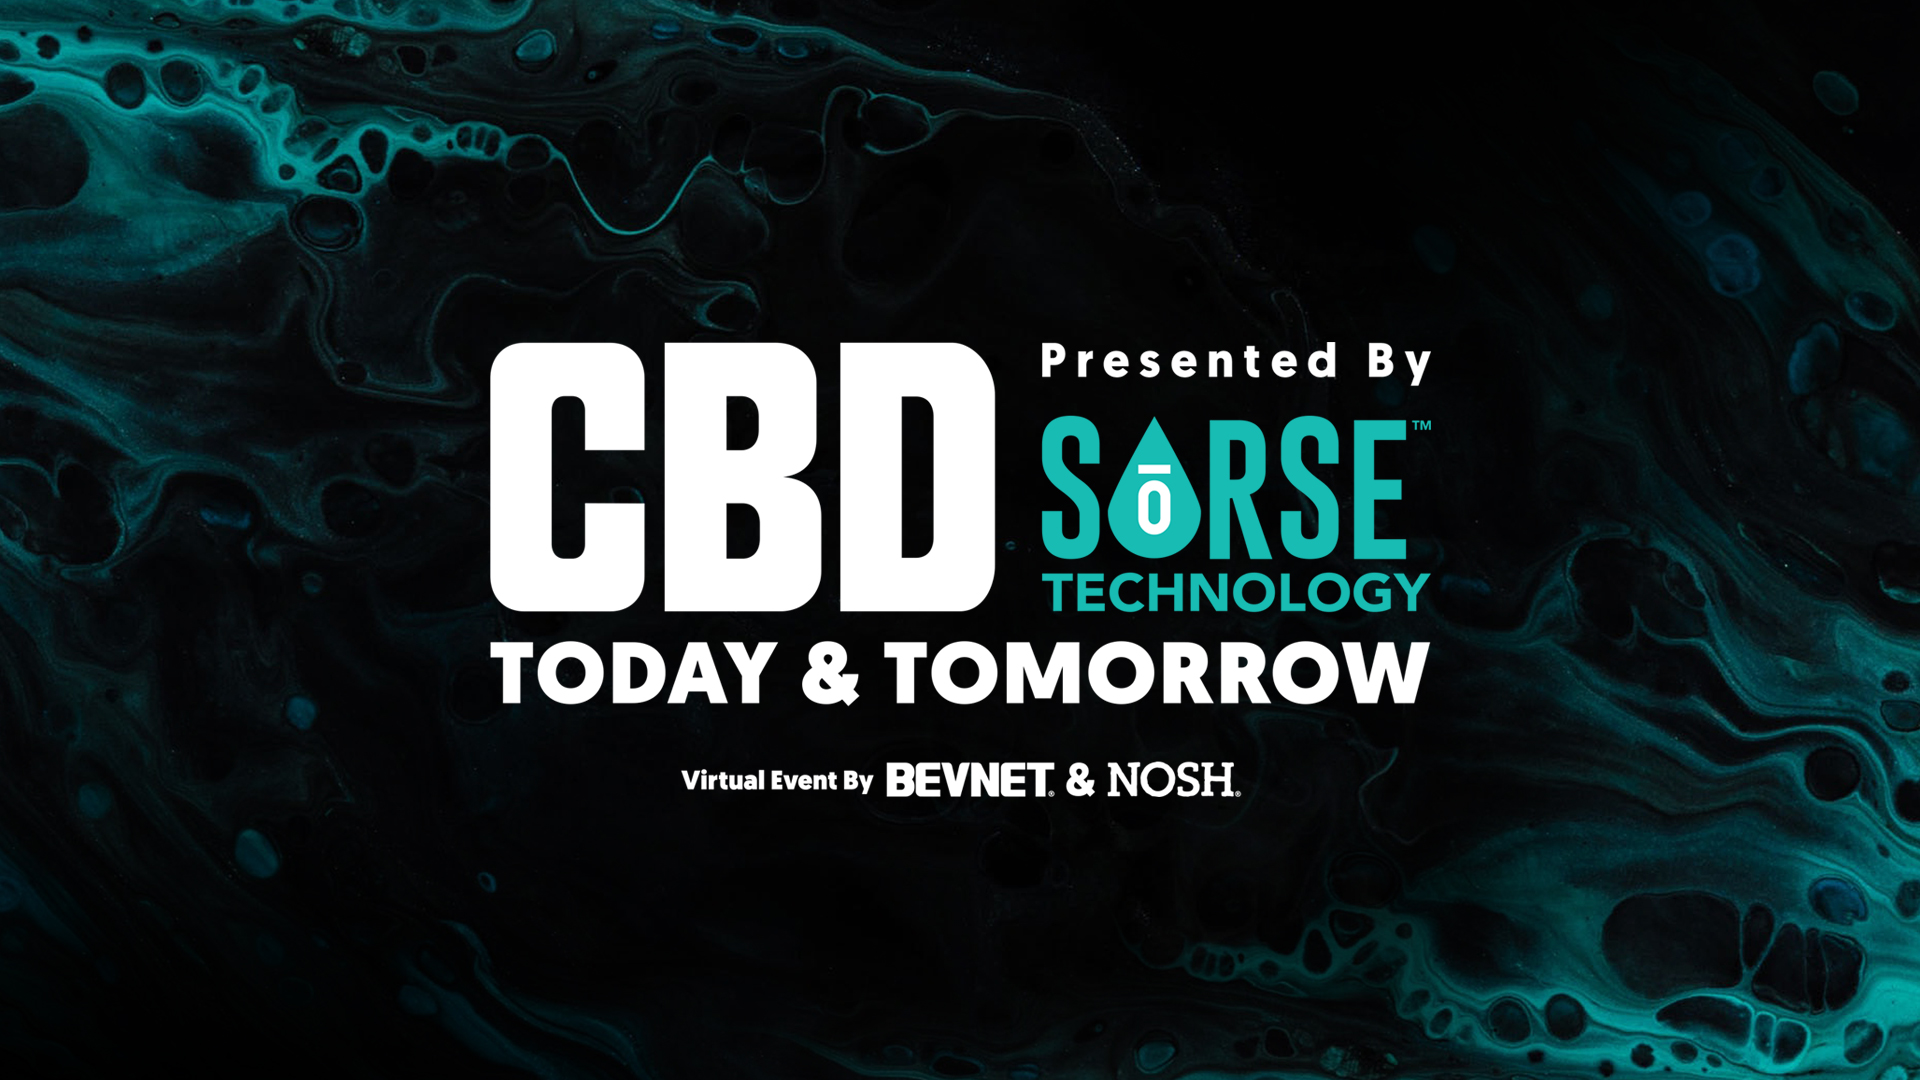 CBD Today & Tomorrow